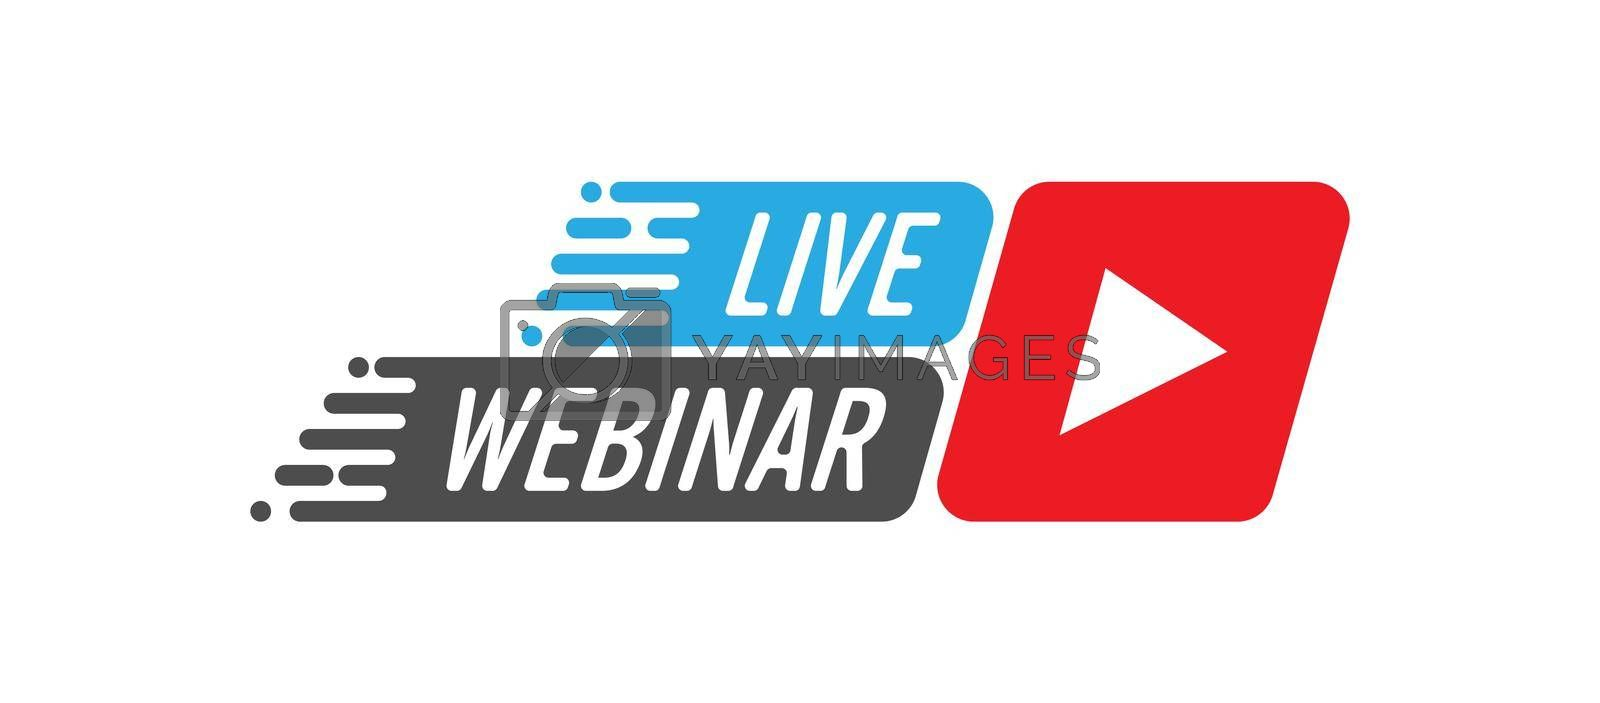 Live webinar vector icon. The icon with the play button. Flat Style